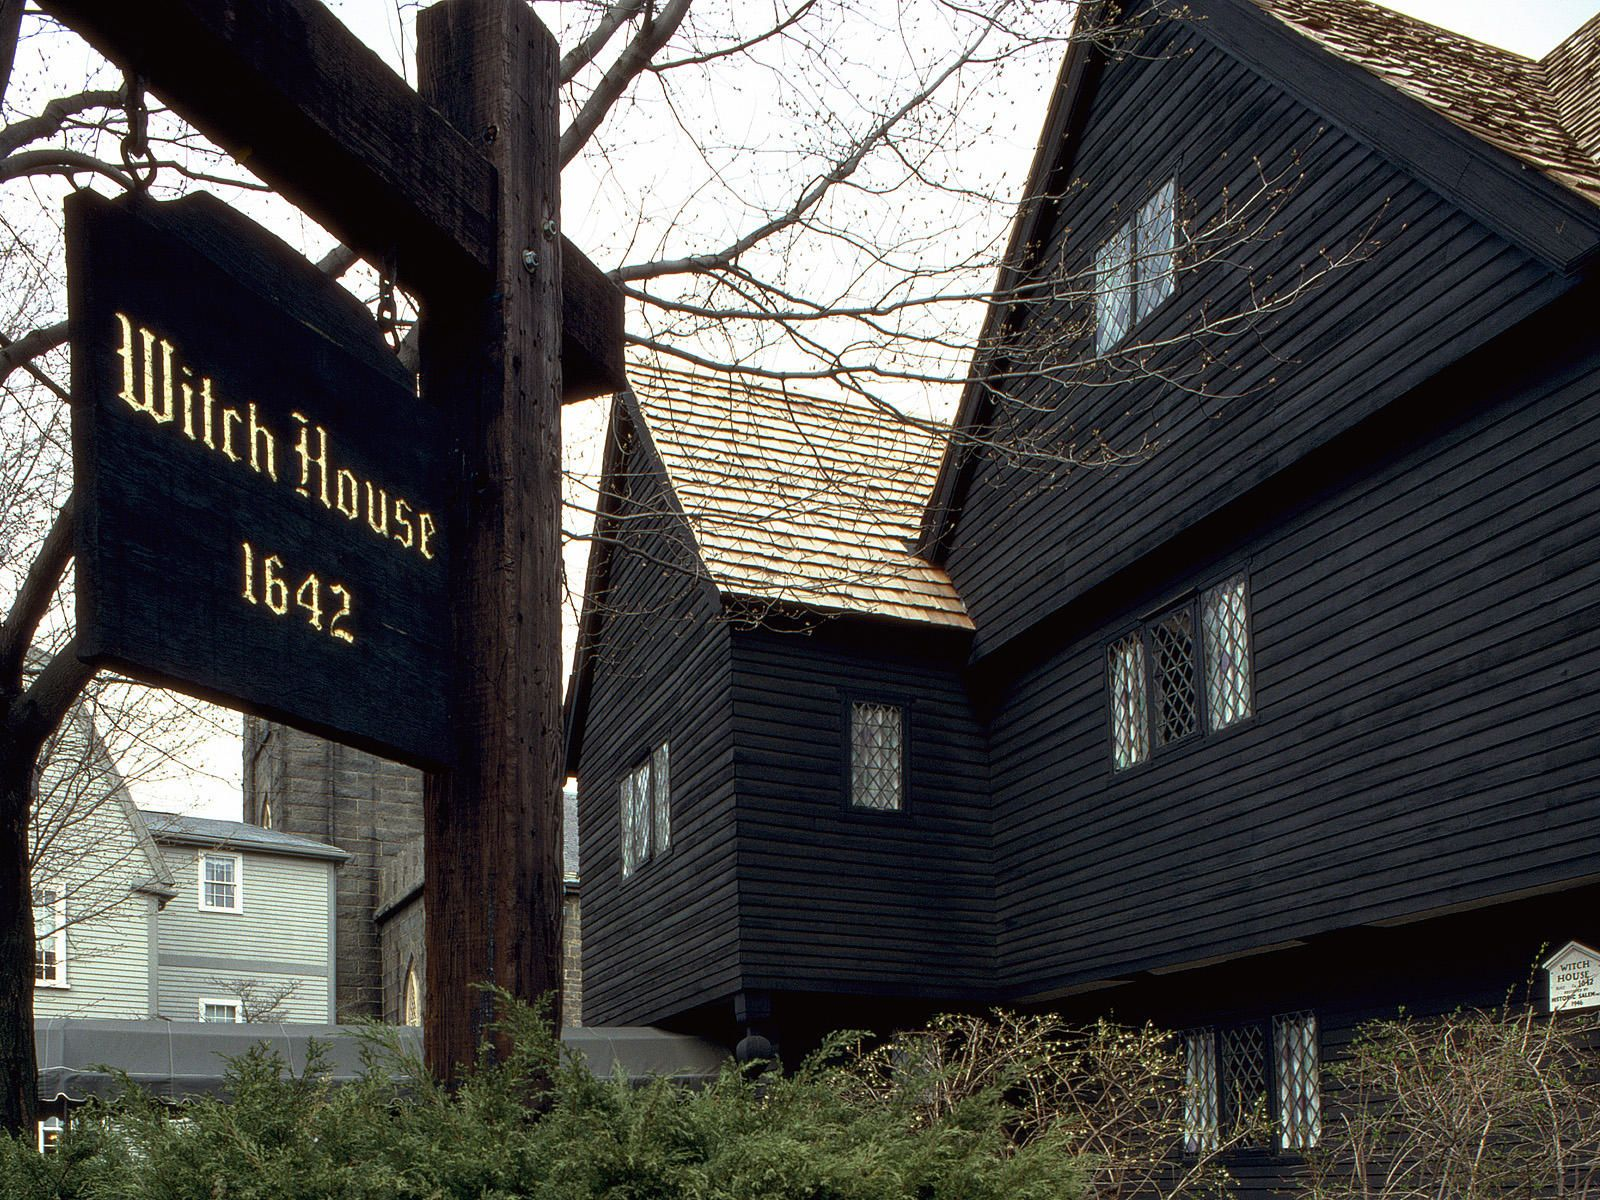 10 Things To Do in Salem This Halloween | Odyssey Articles